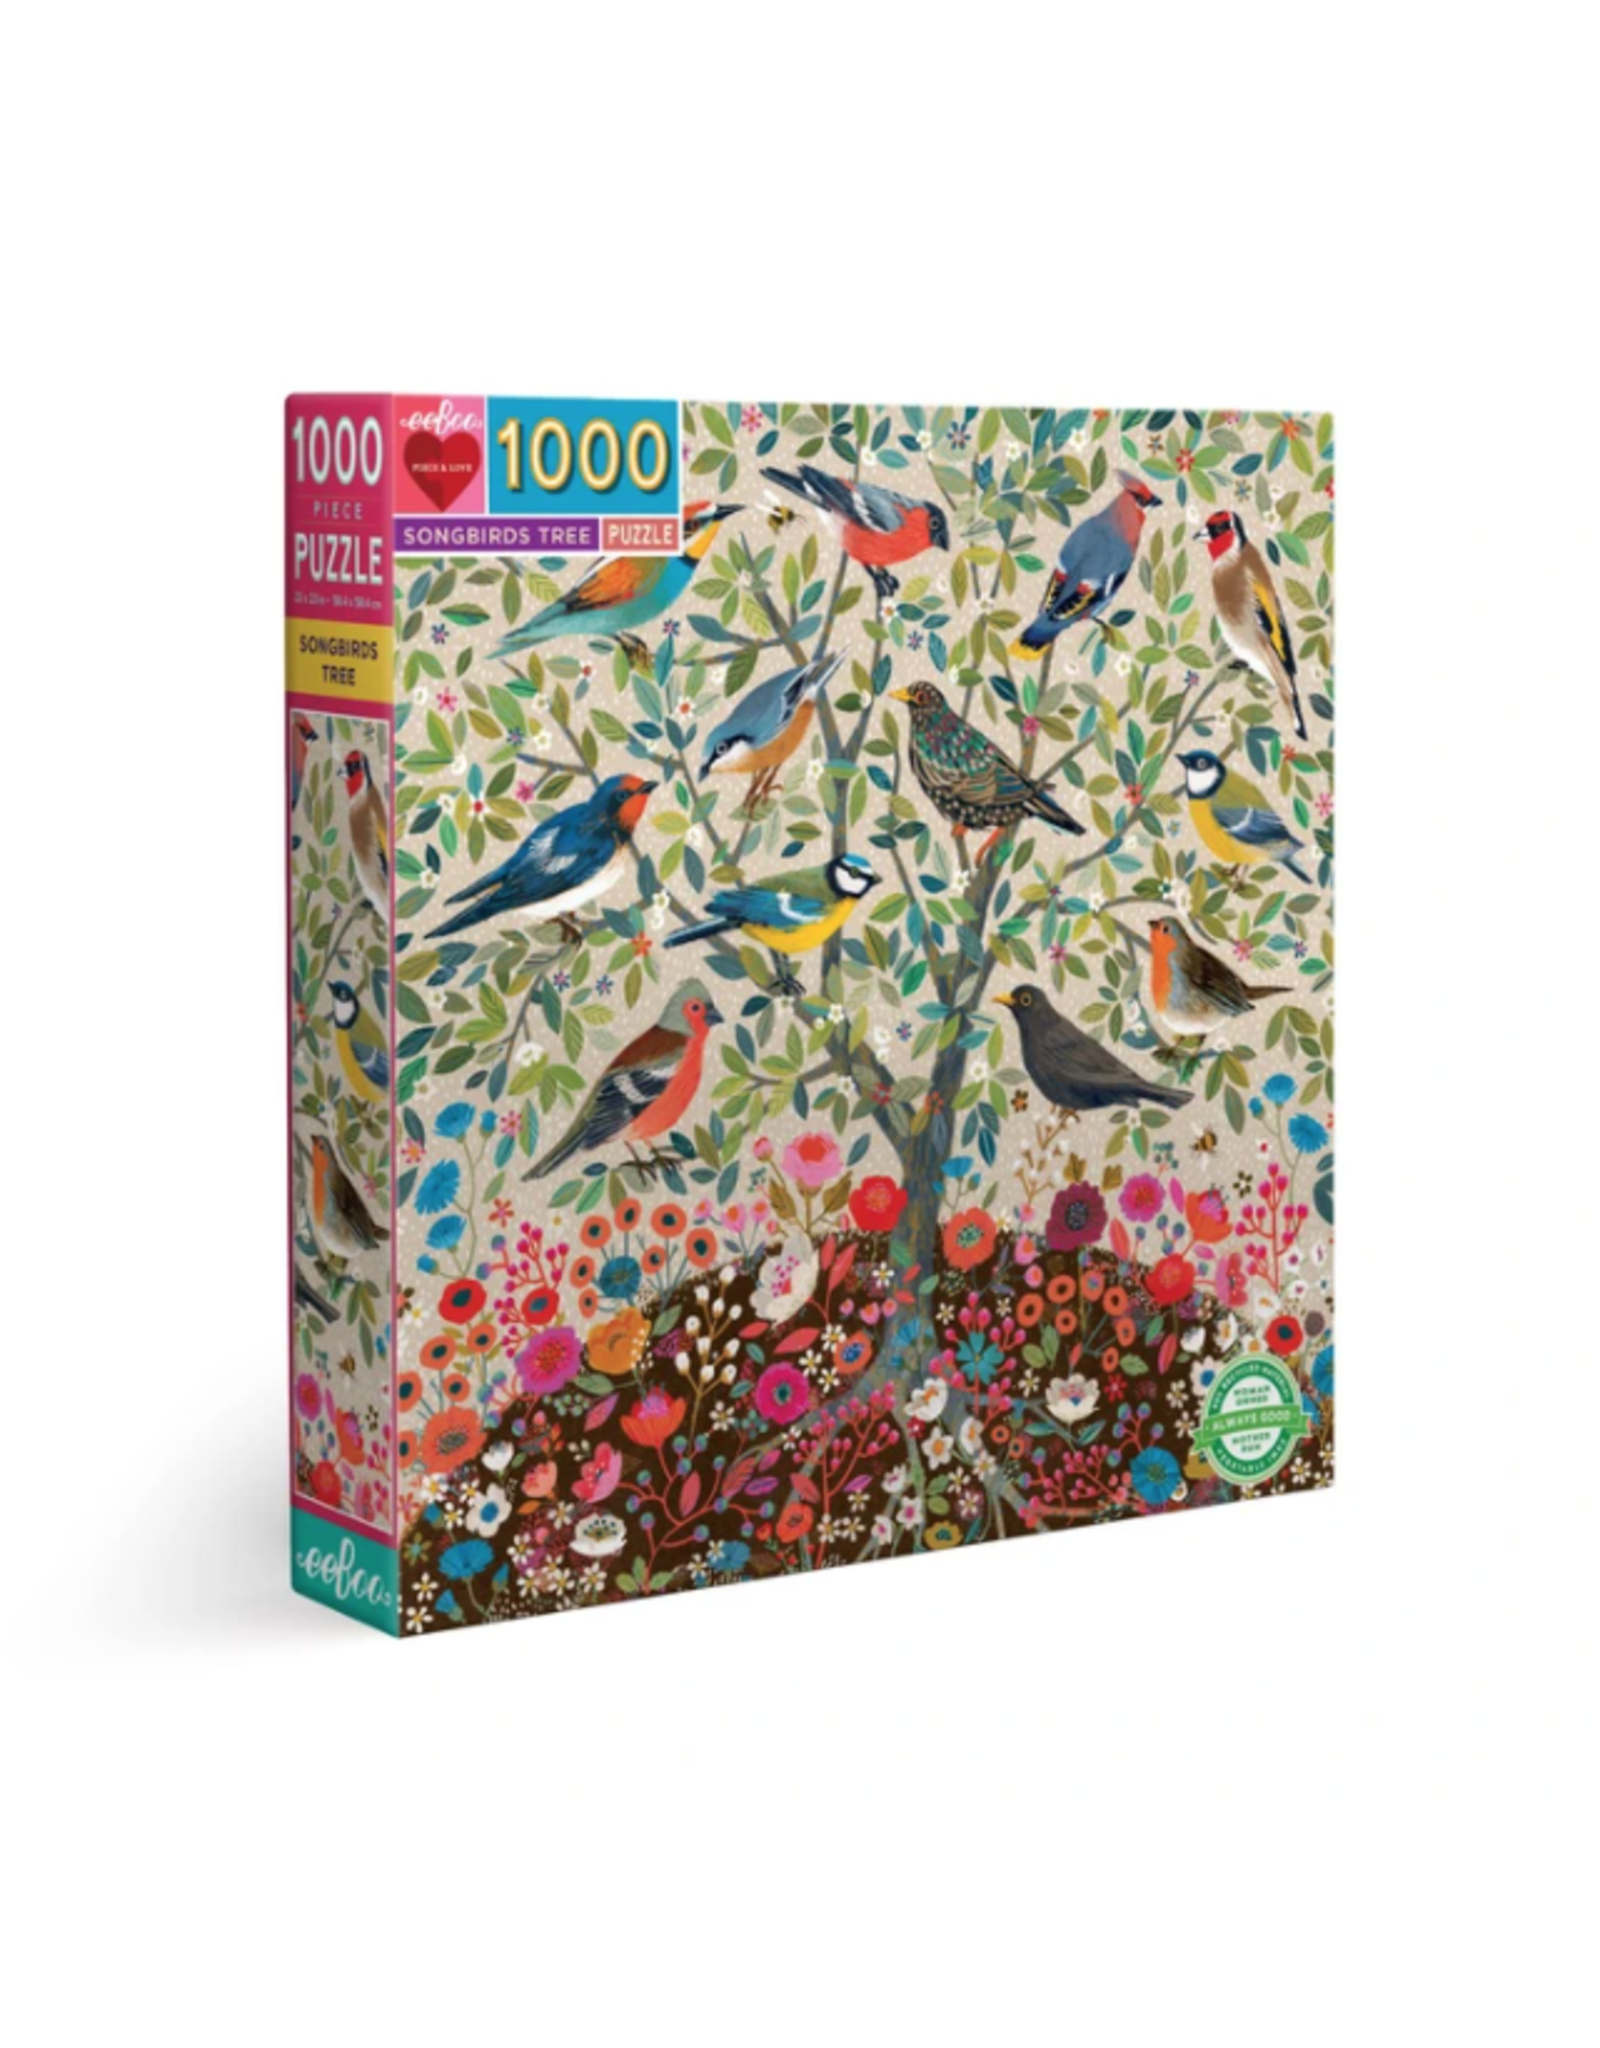 Eeboo 1000 pcs. Songbirds Tree Puzzle